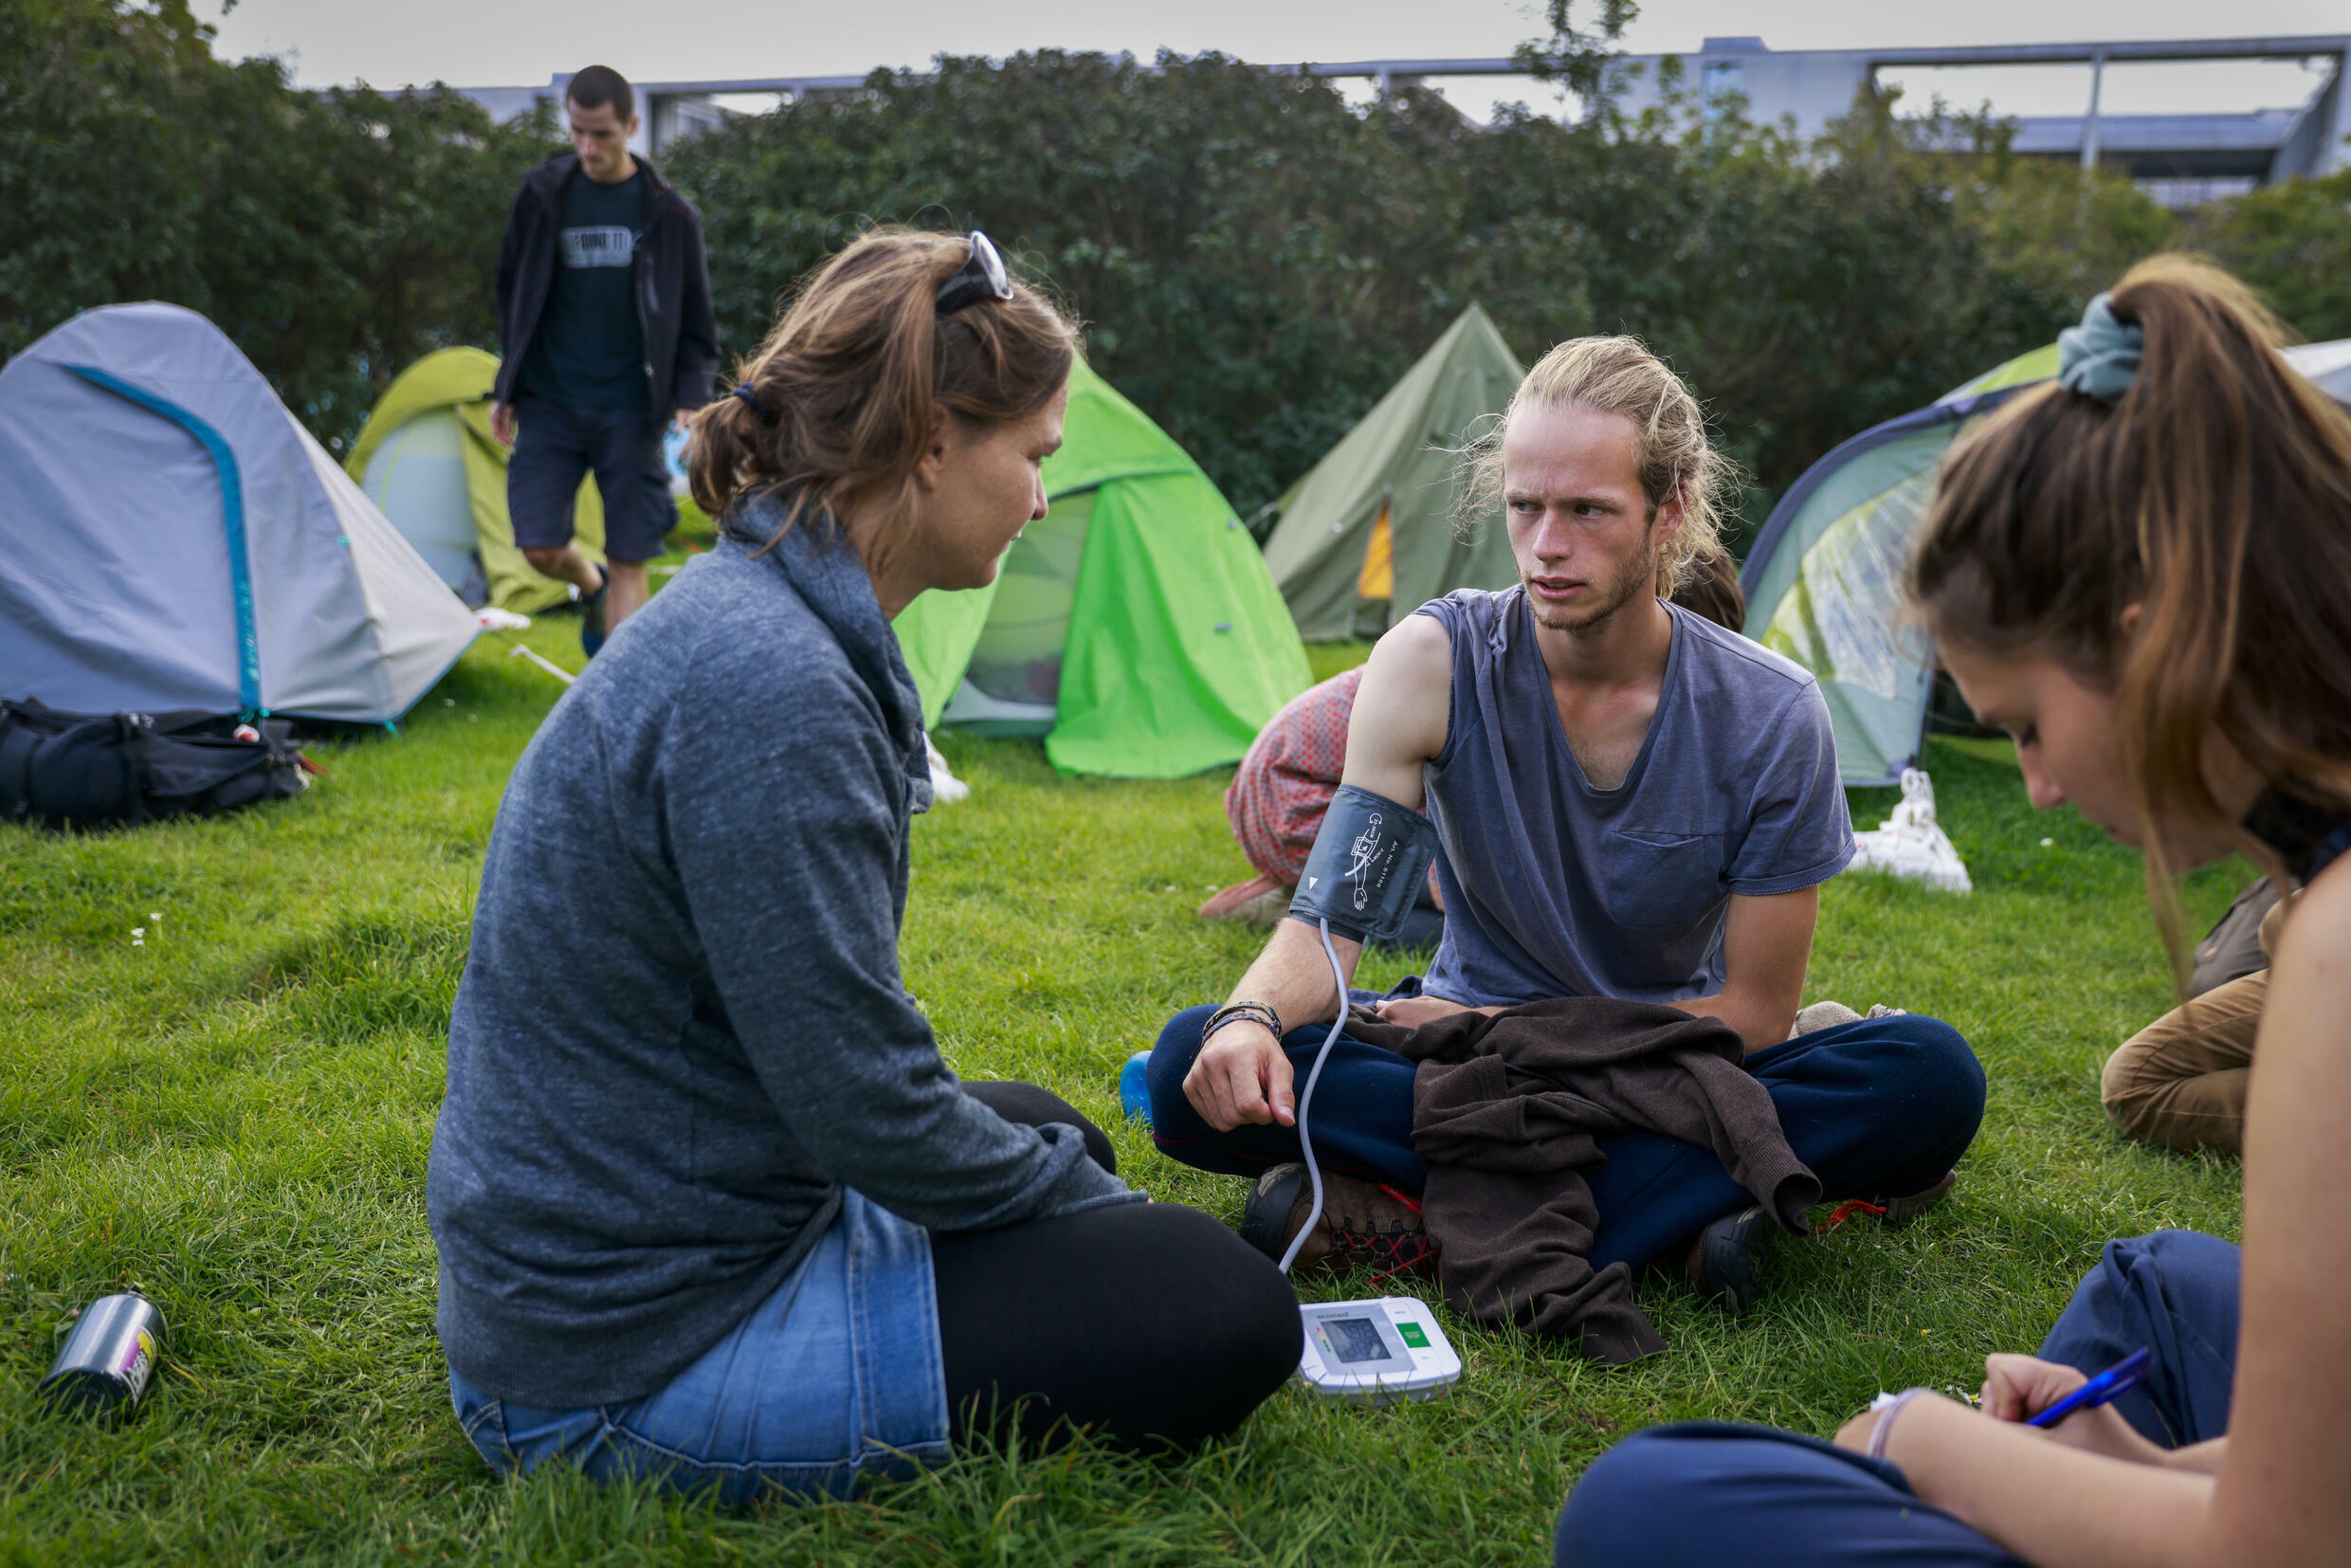 The climate activists want to meet chancellor candidates, conservative Armin Laschet, Social Democrat Olaf Scholz and the Greens' Annalena Baerbock